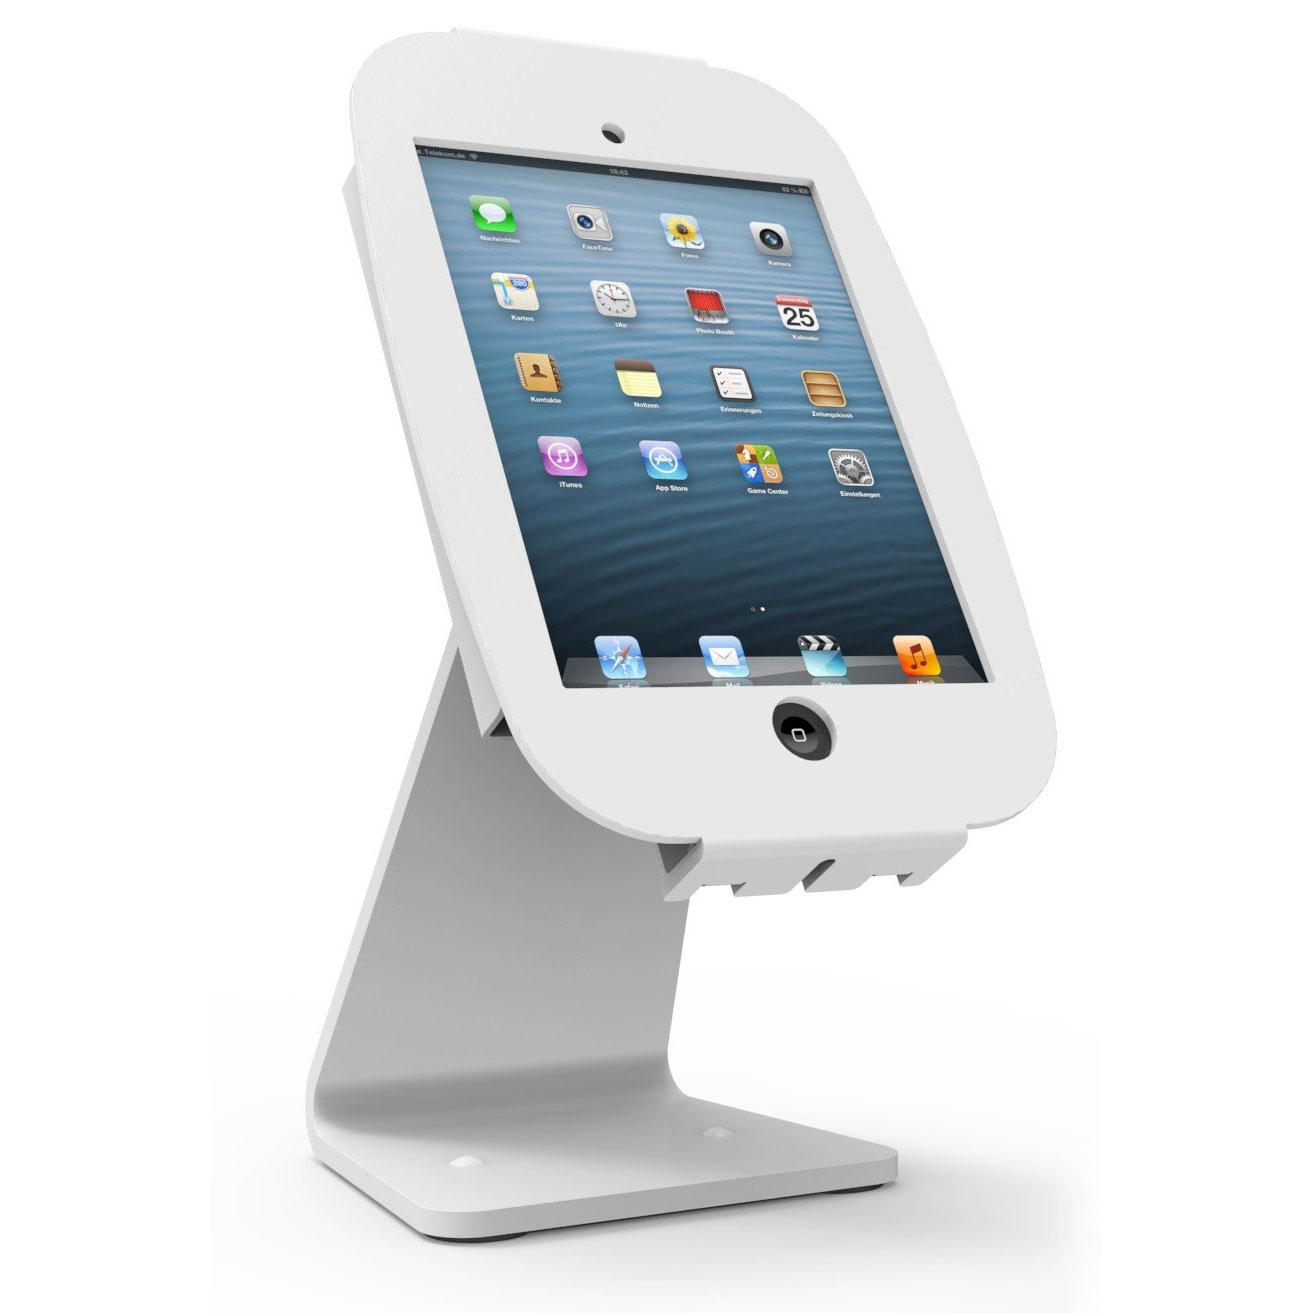 maclocks space ipad 360 kiosk blanc support tablette maclocks sur. Black Bedroom Furniture Sets. Home Design Ideas